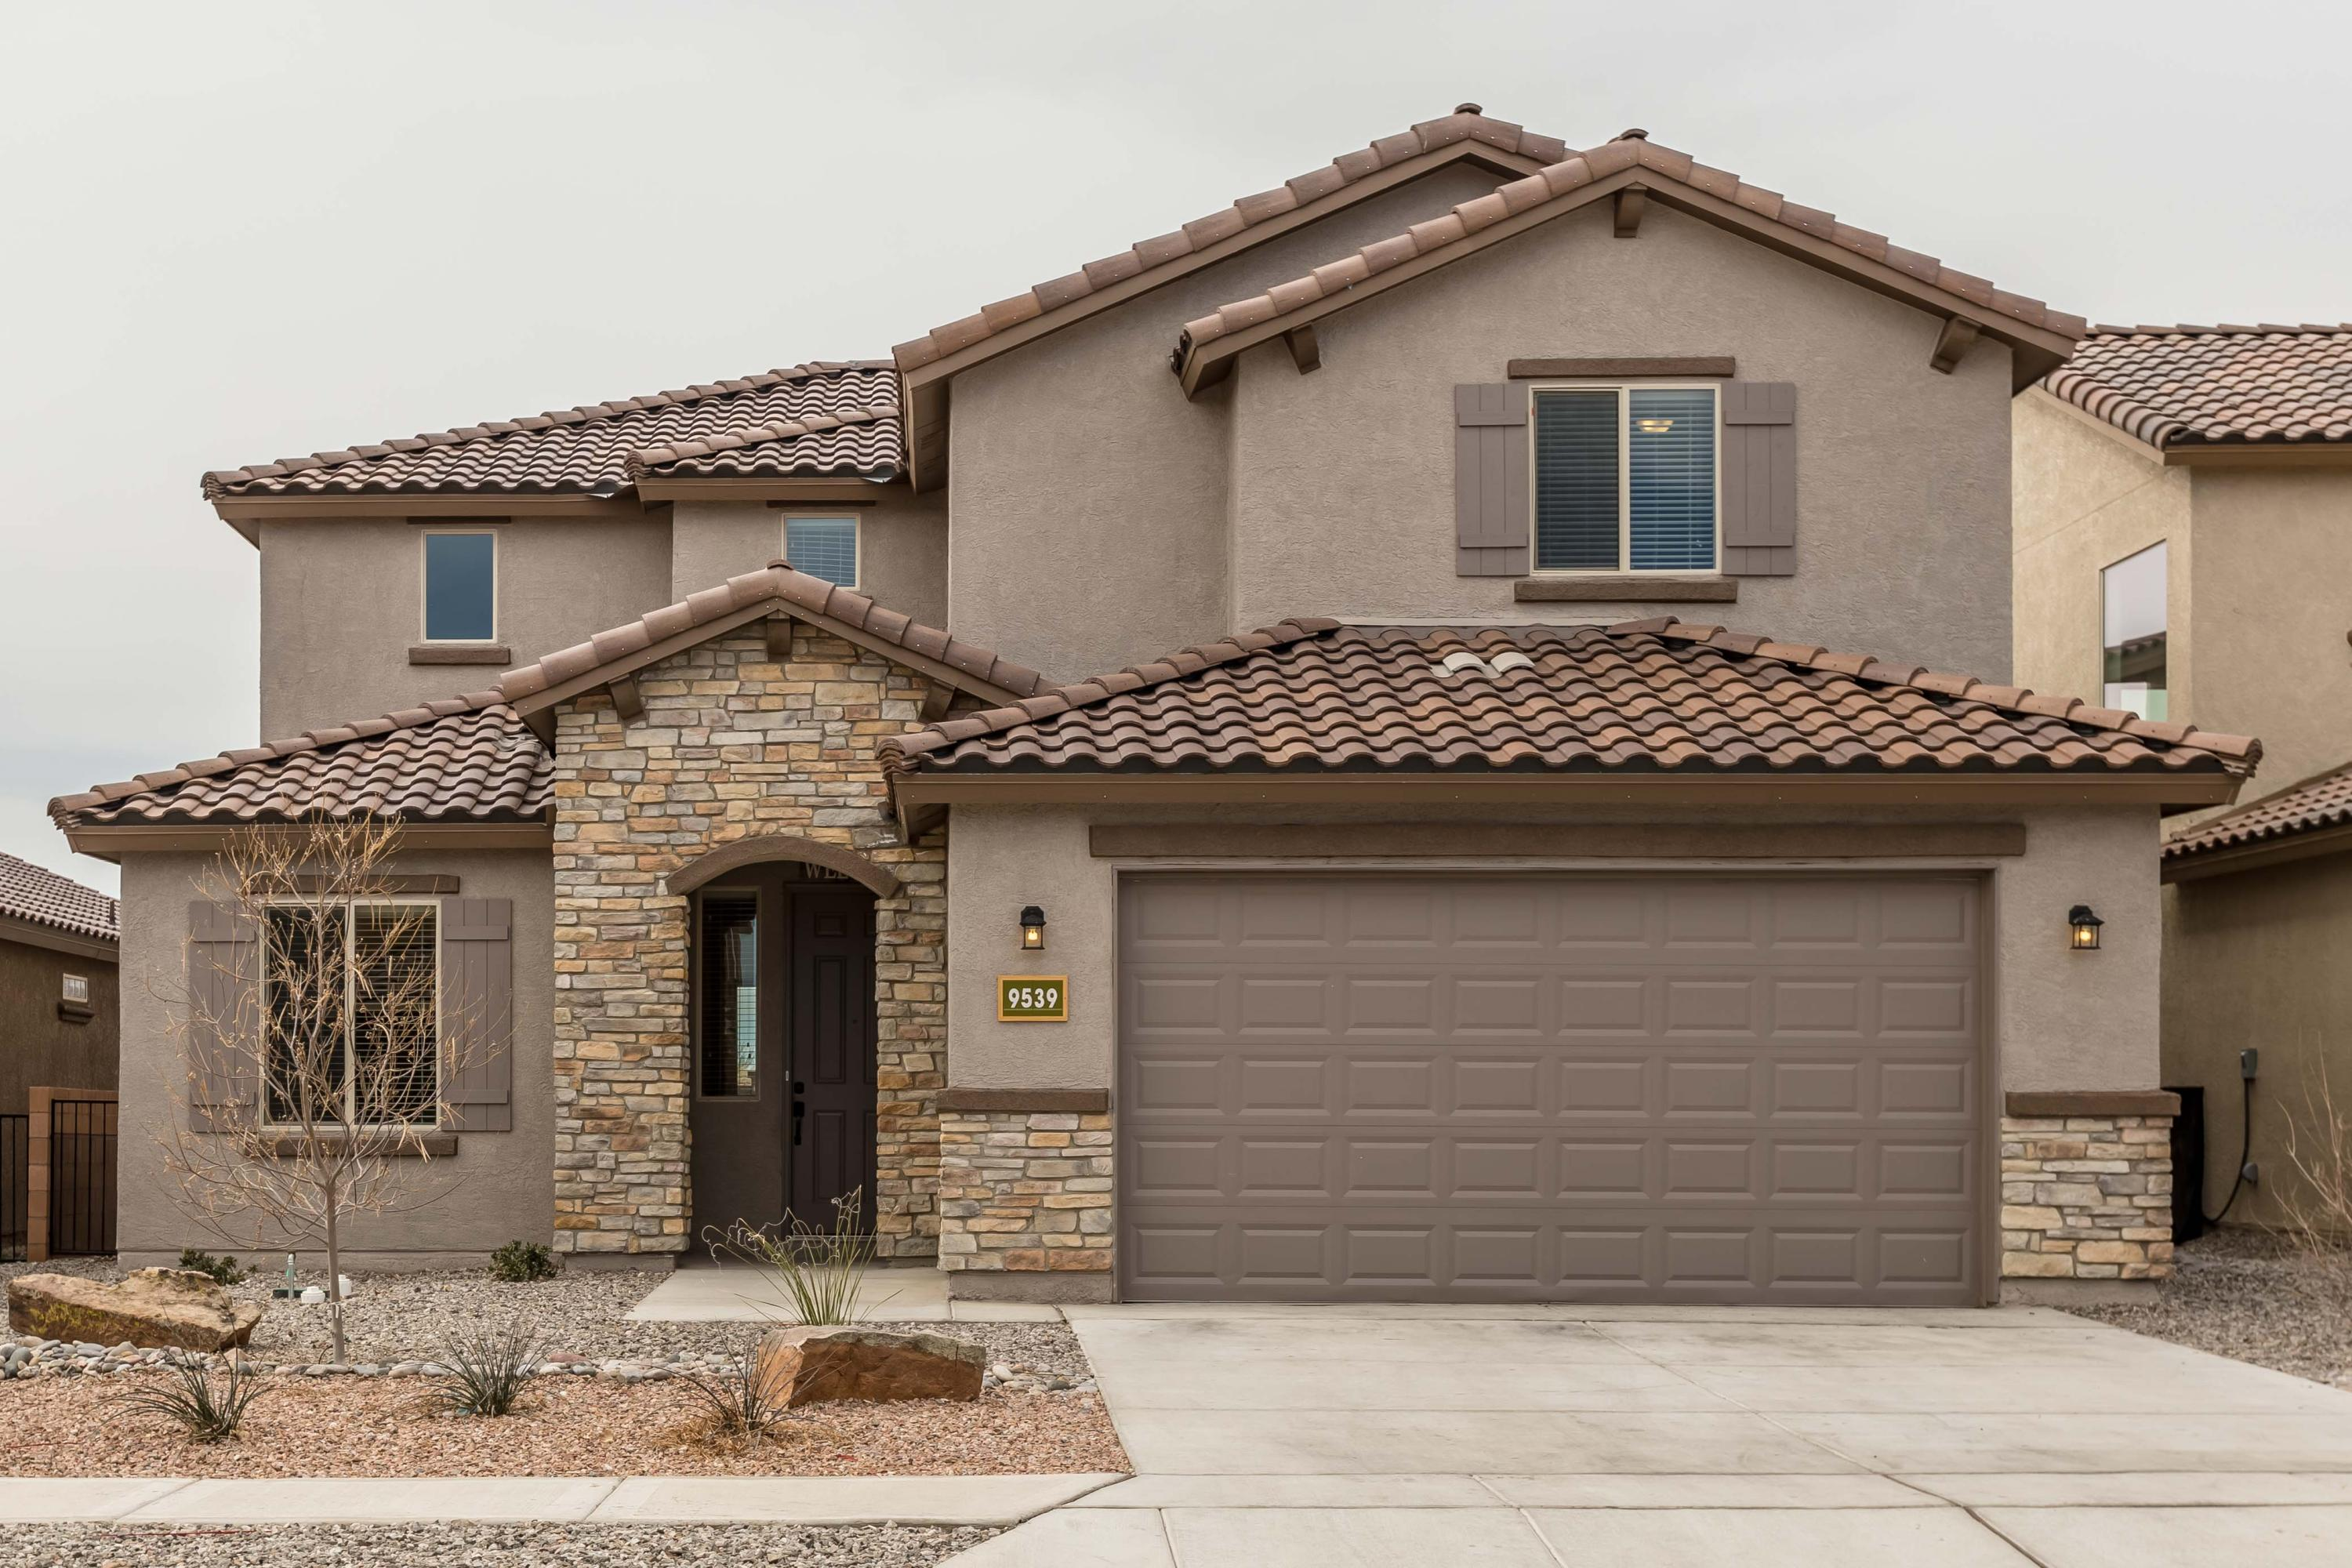 9539 NW Big Rock Drive, Northwest Albuquerque and Northwest Heights, New Mexico